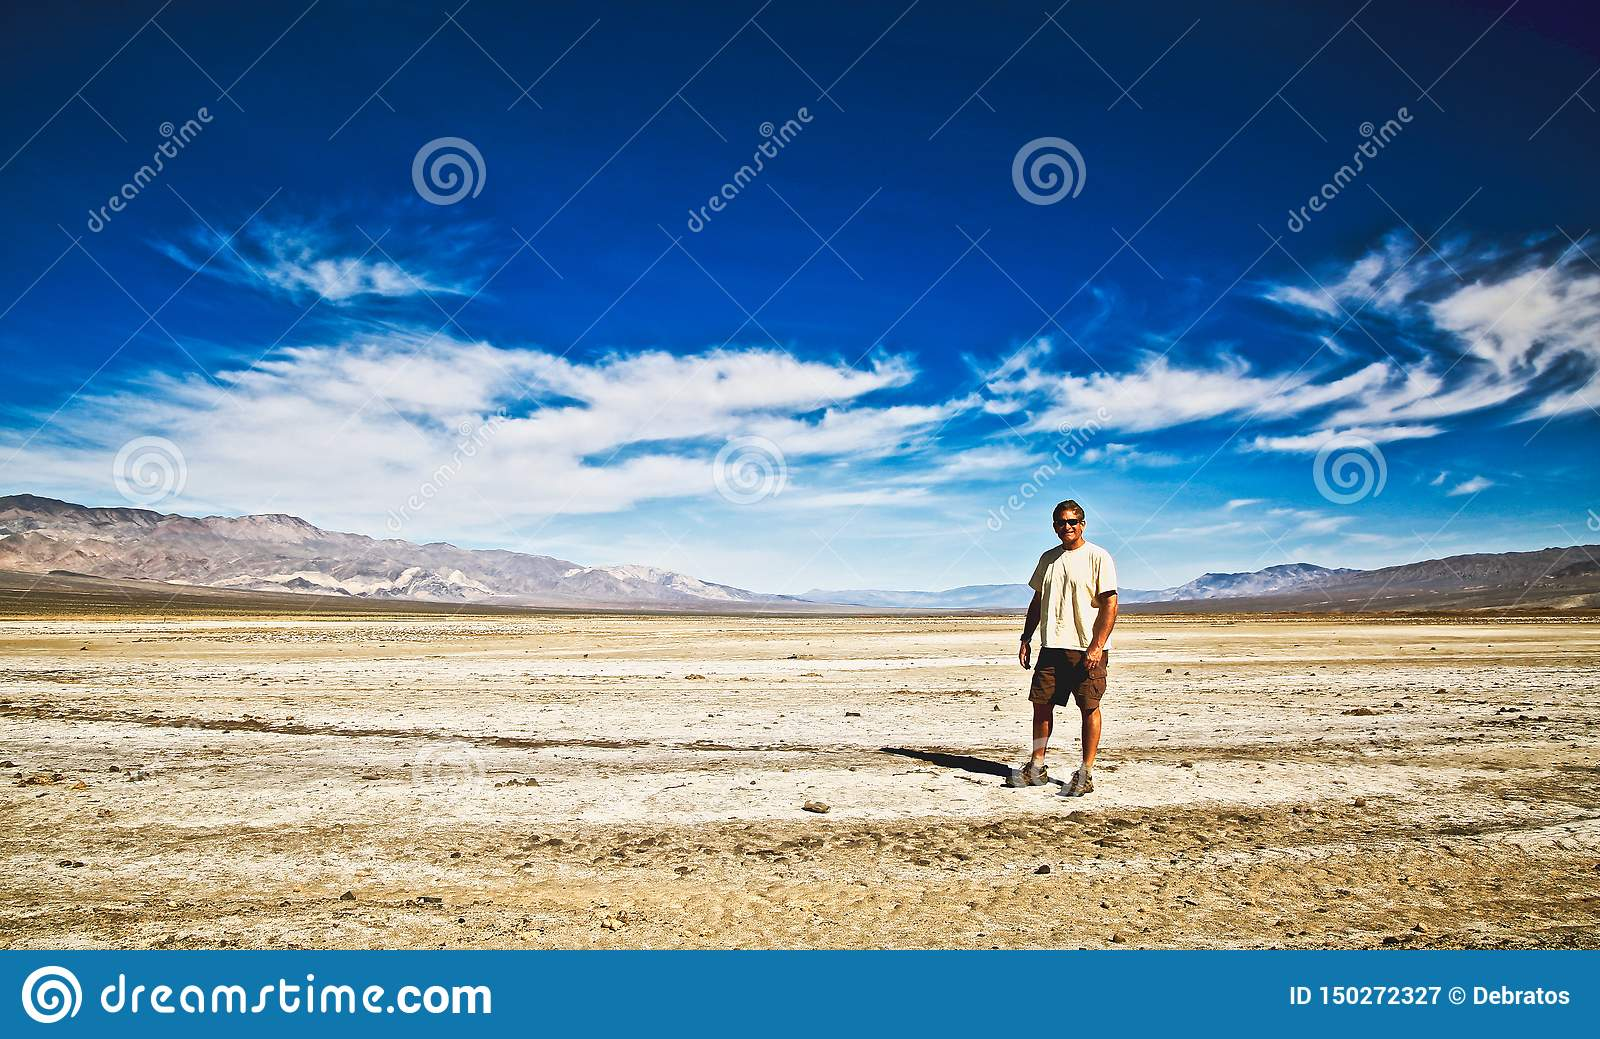 Hiker Mountains Death Valley Salt Flats Stock Image Image Of Mountain Flats 150272327